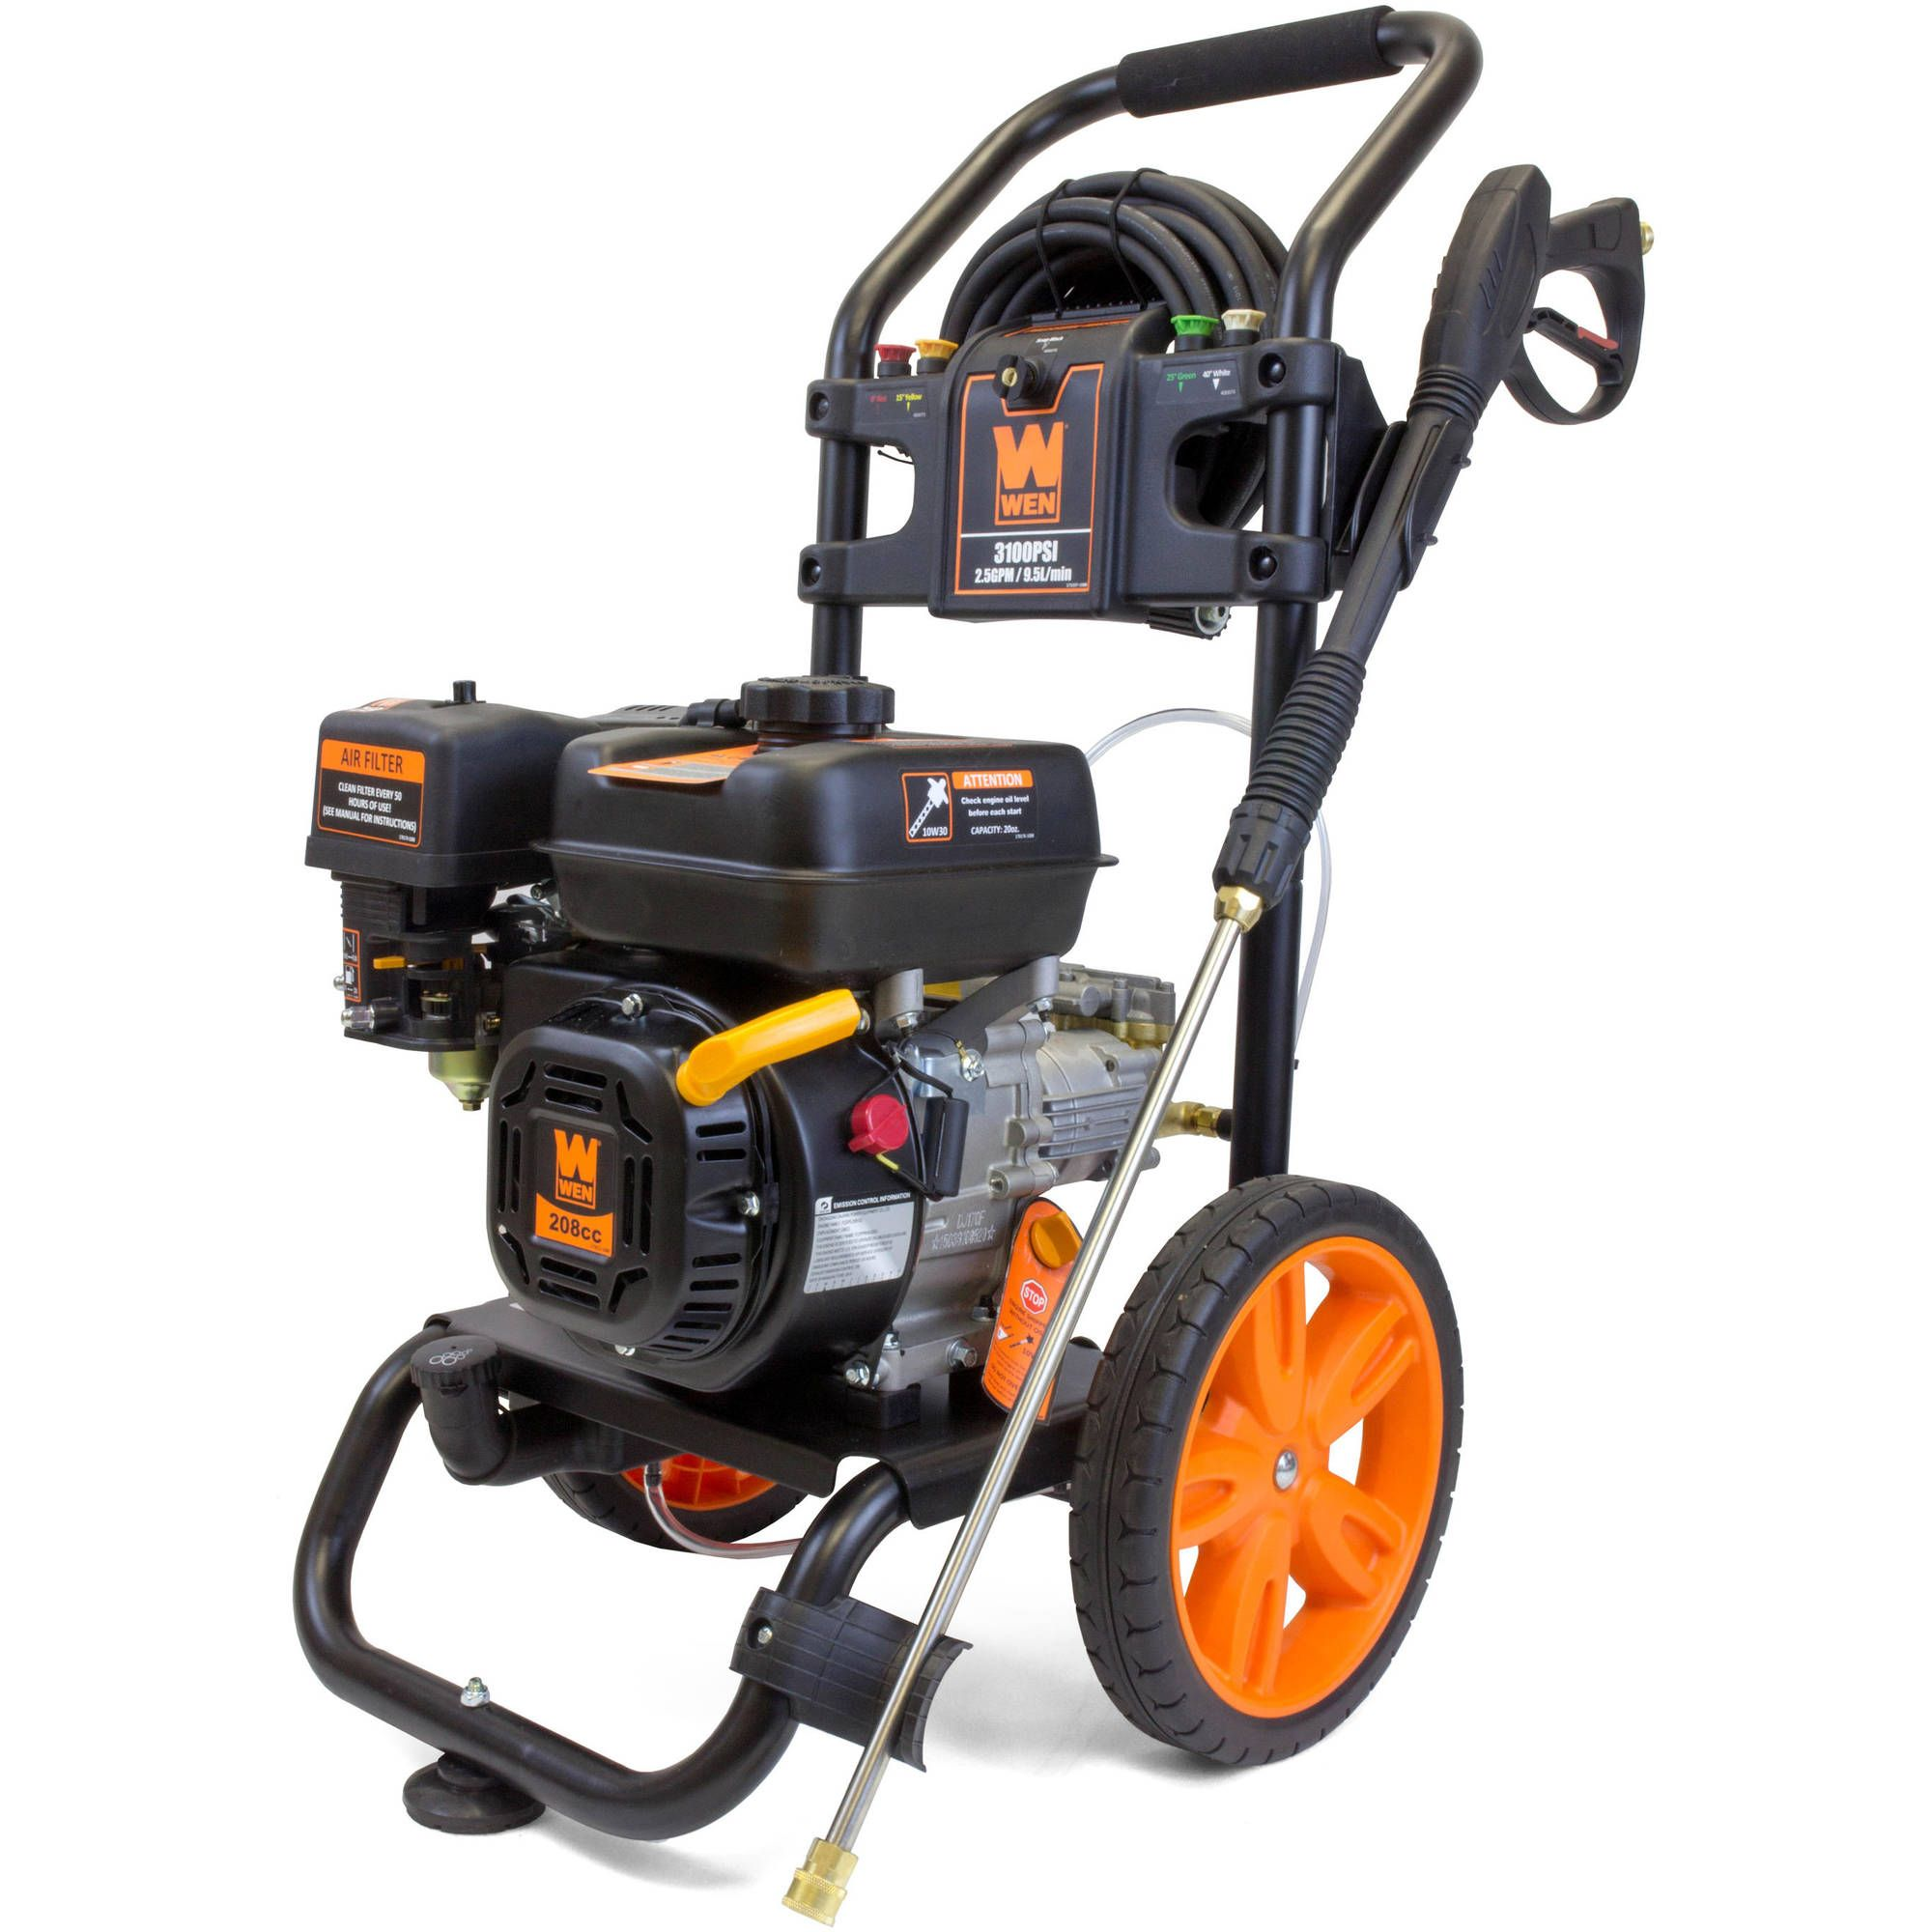 The 10 Best Gas Pressure Washers Buying Guide With Images Best Pressure Washer Electric Pressure Washer Pressure Washer